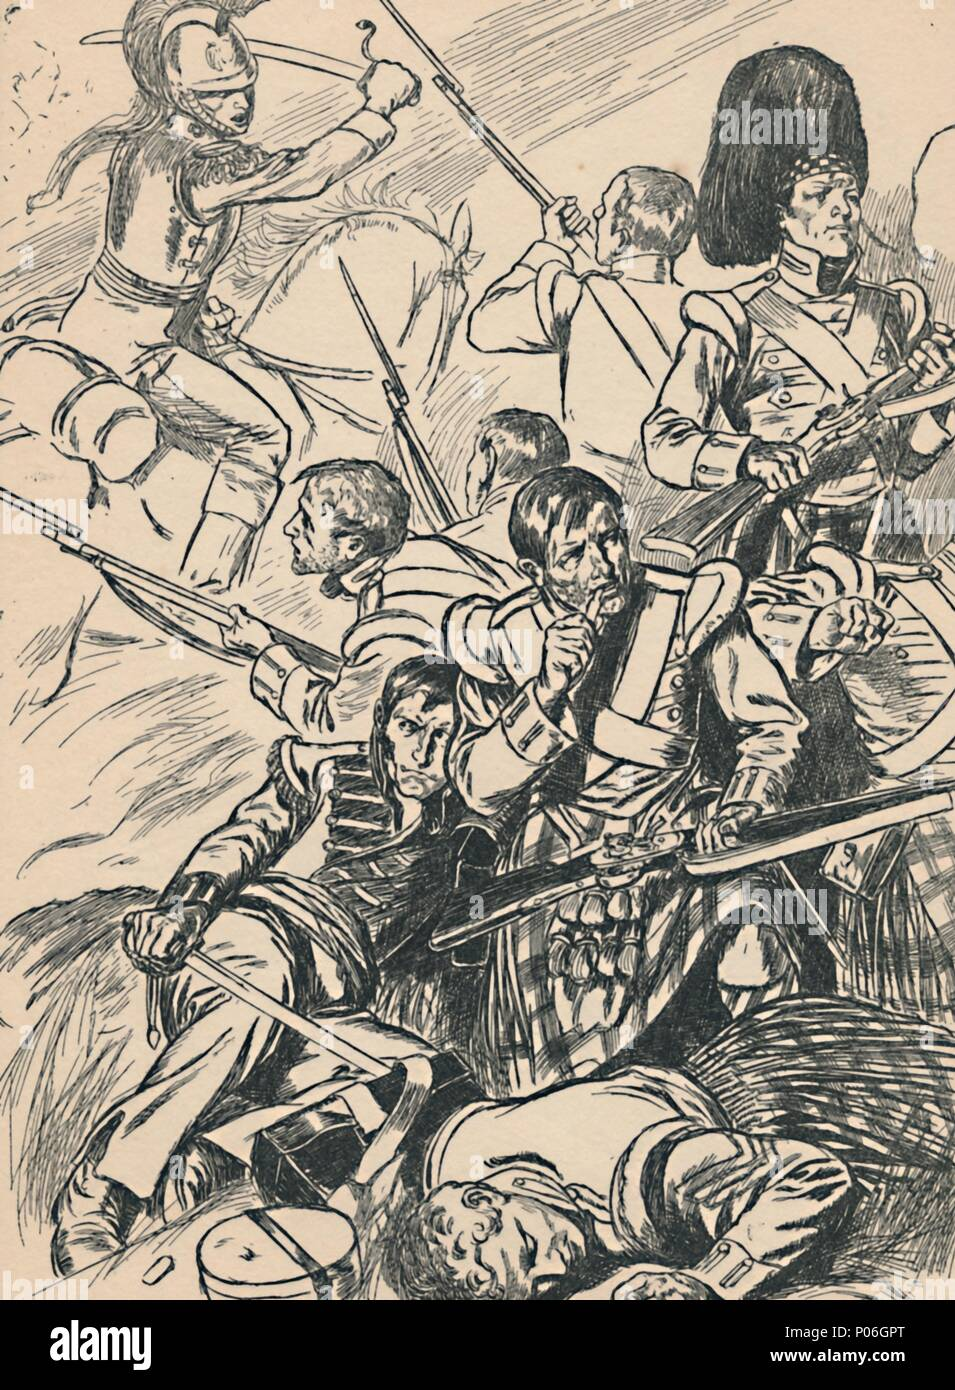 'British Soldiers at the Battle of Waterloo', c1907. From My Book of True Stories. [Blackie and Son Limited, London] - Stock Image